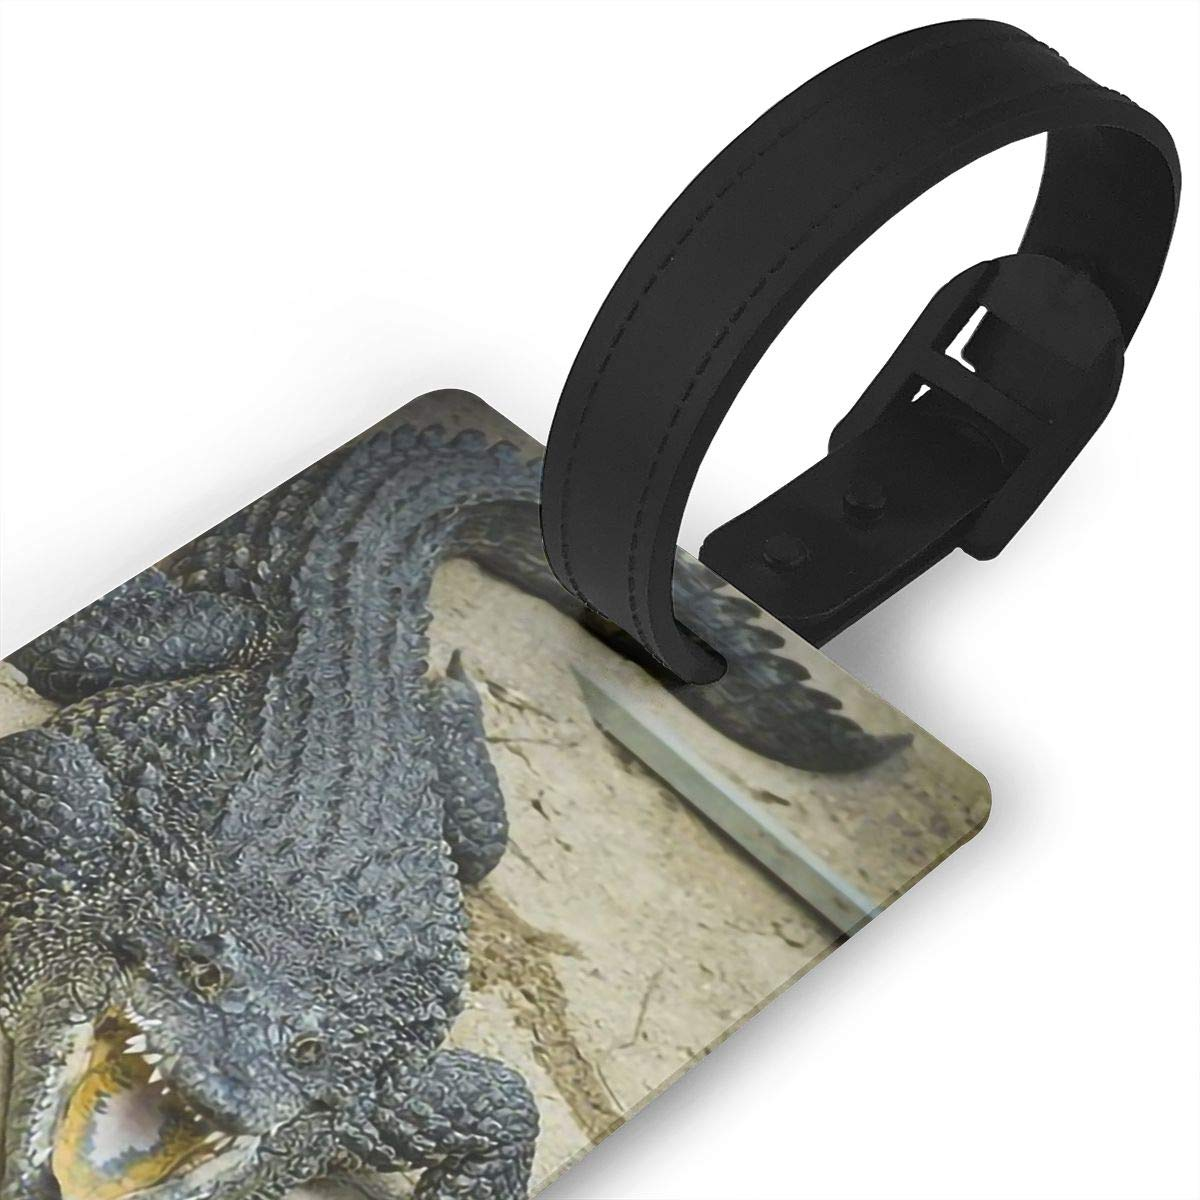 Alligator Travel Tags For Travel Tags Accessories 2 Pack Luggage Tags